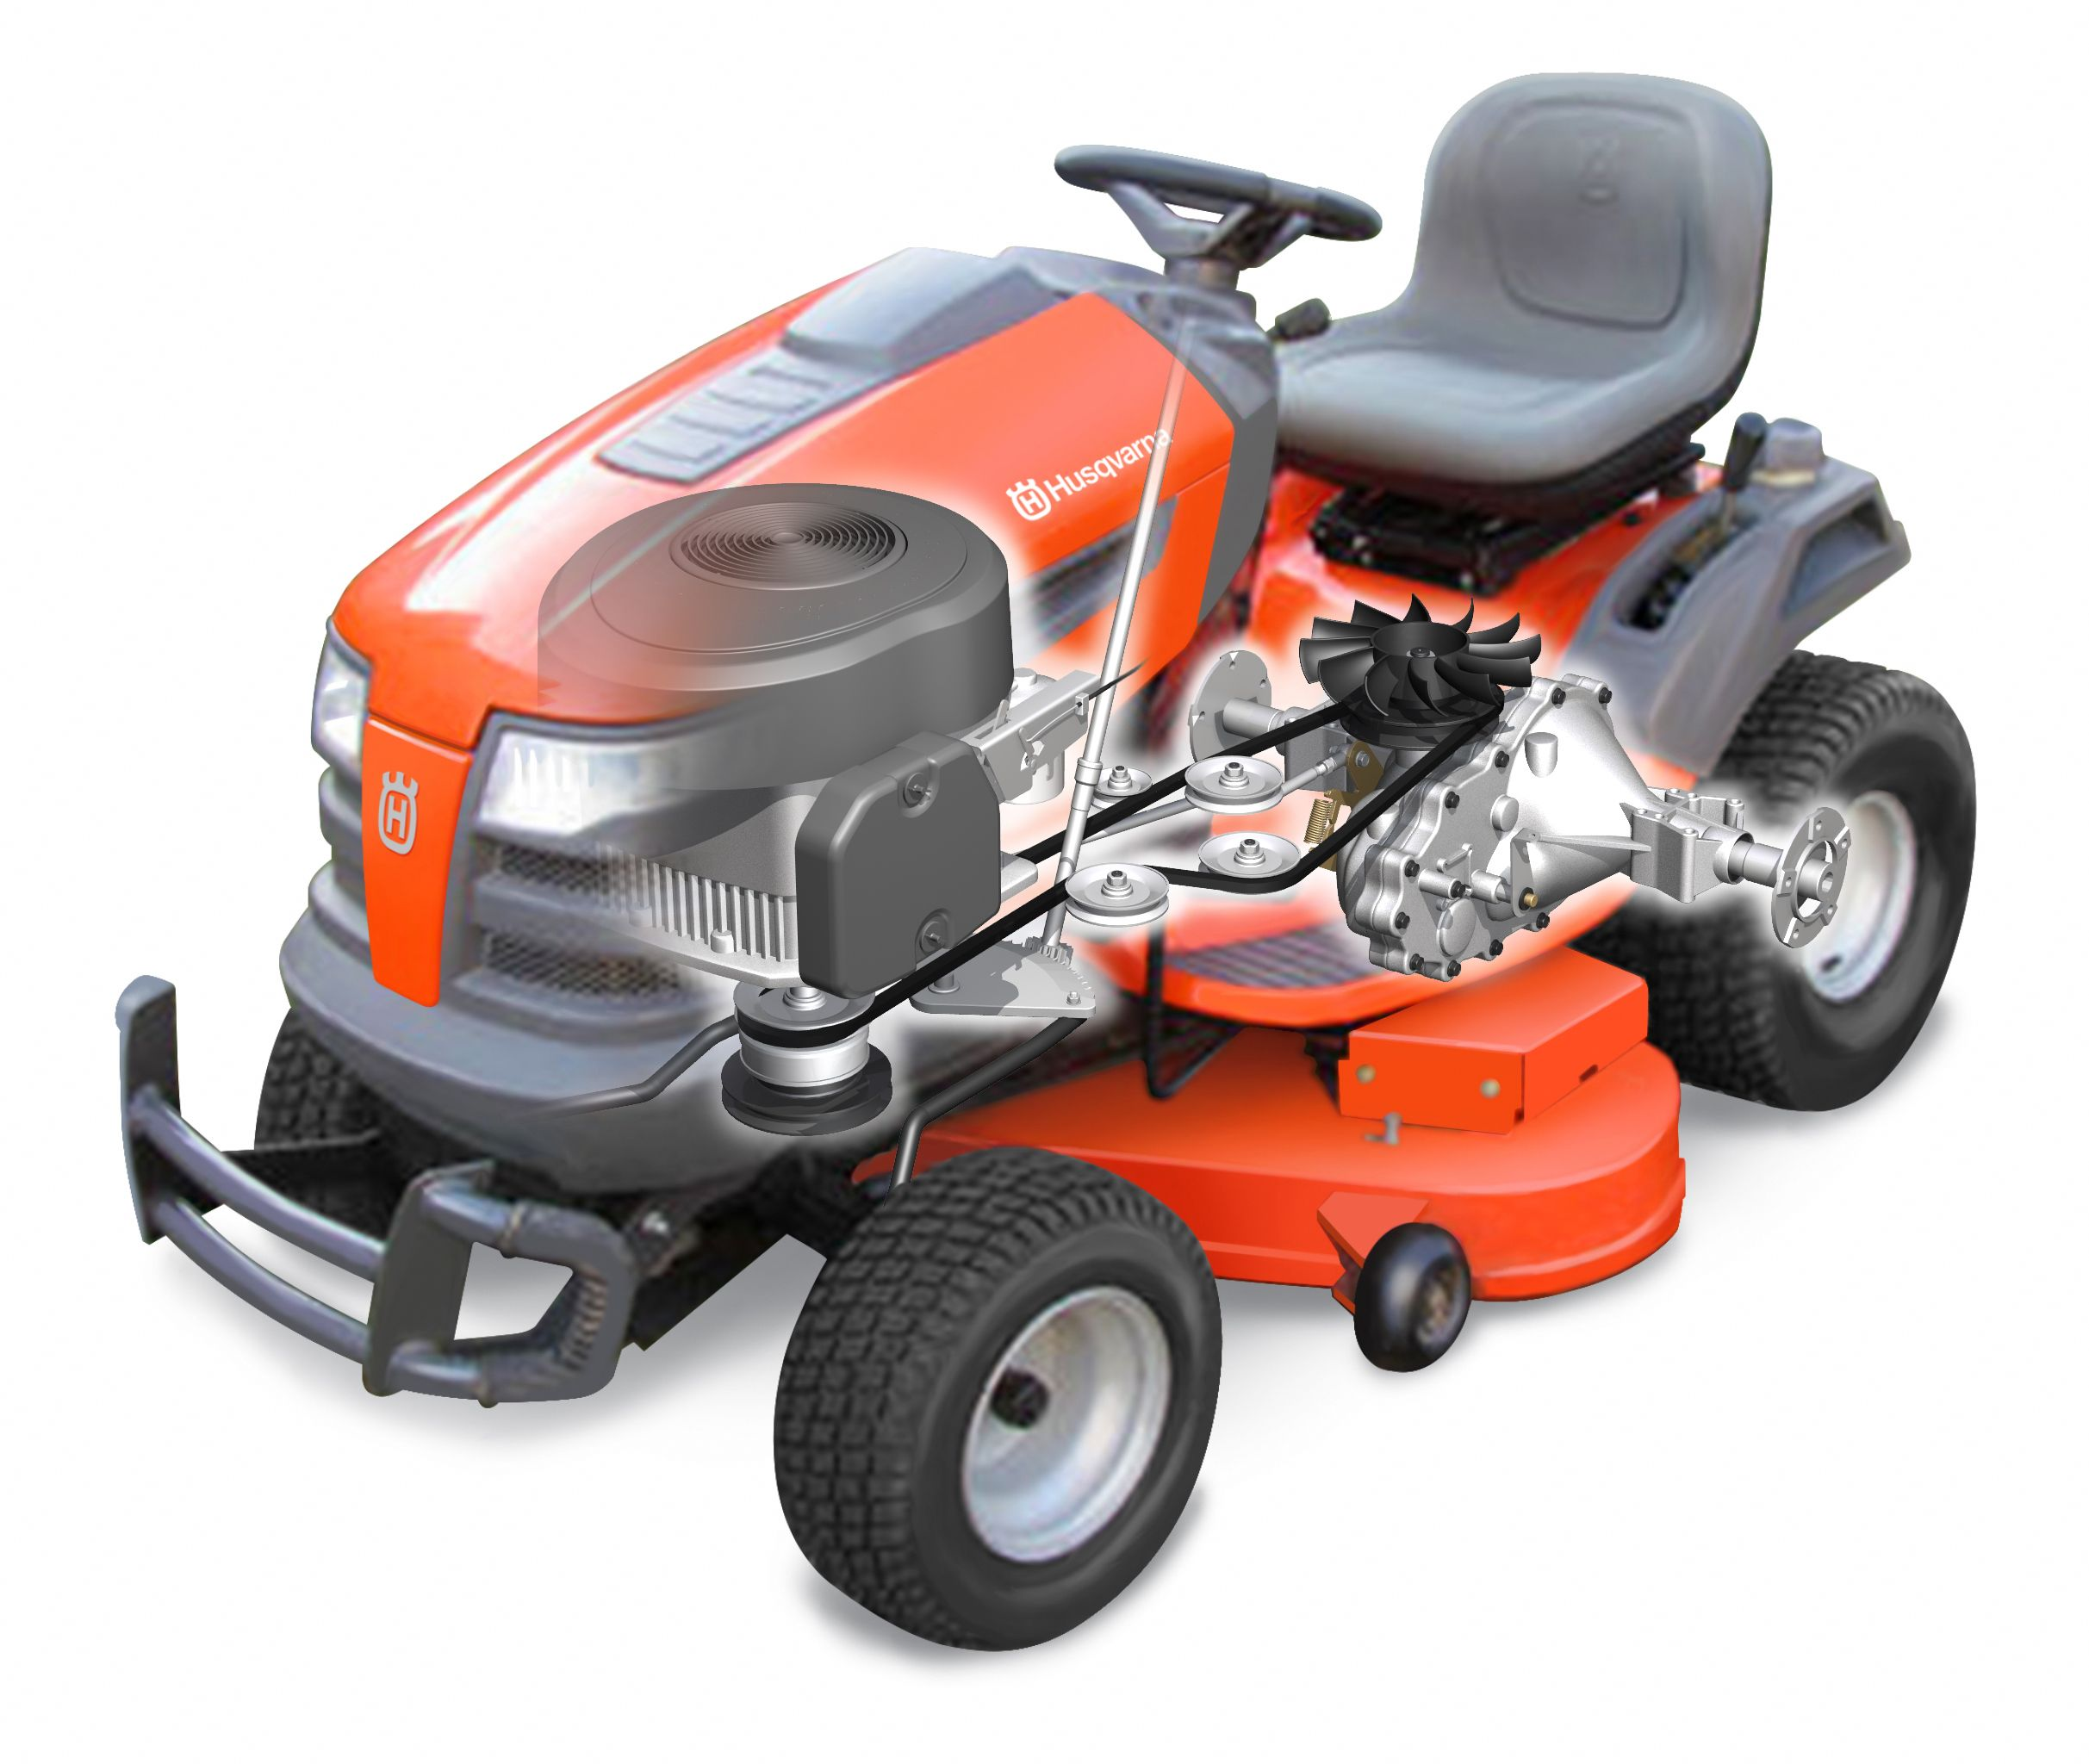 The Best Electric and Gas Mowers for Any Type of Yard